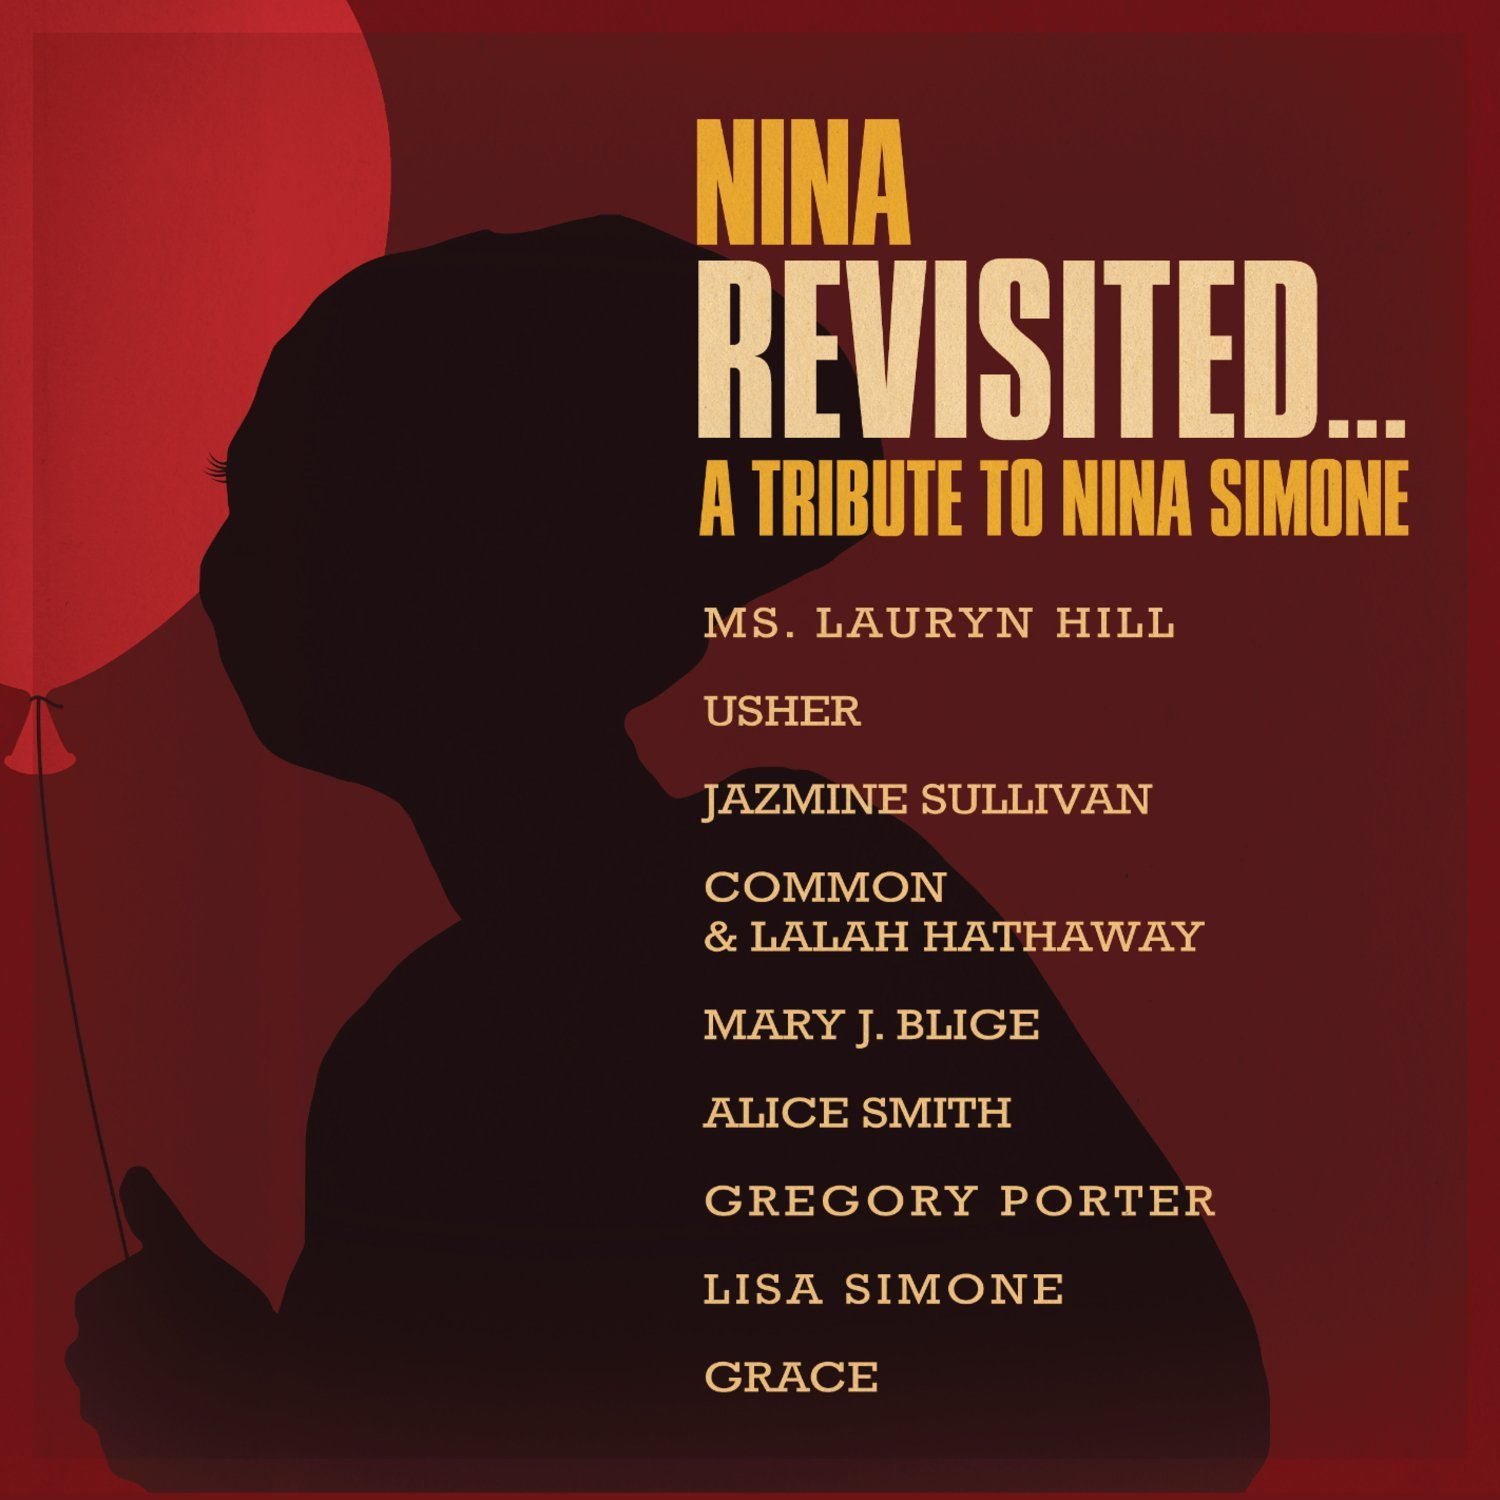 'Nina Revisited' Is An Exceptional Tribute Album